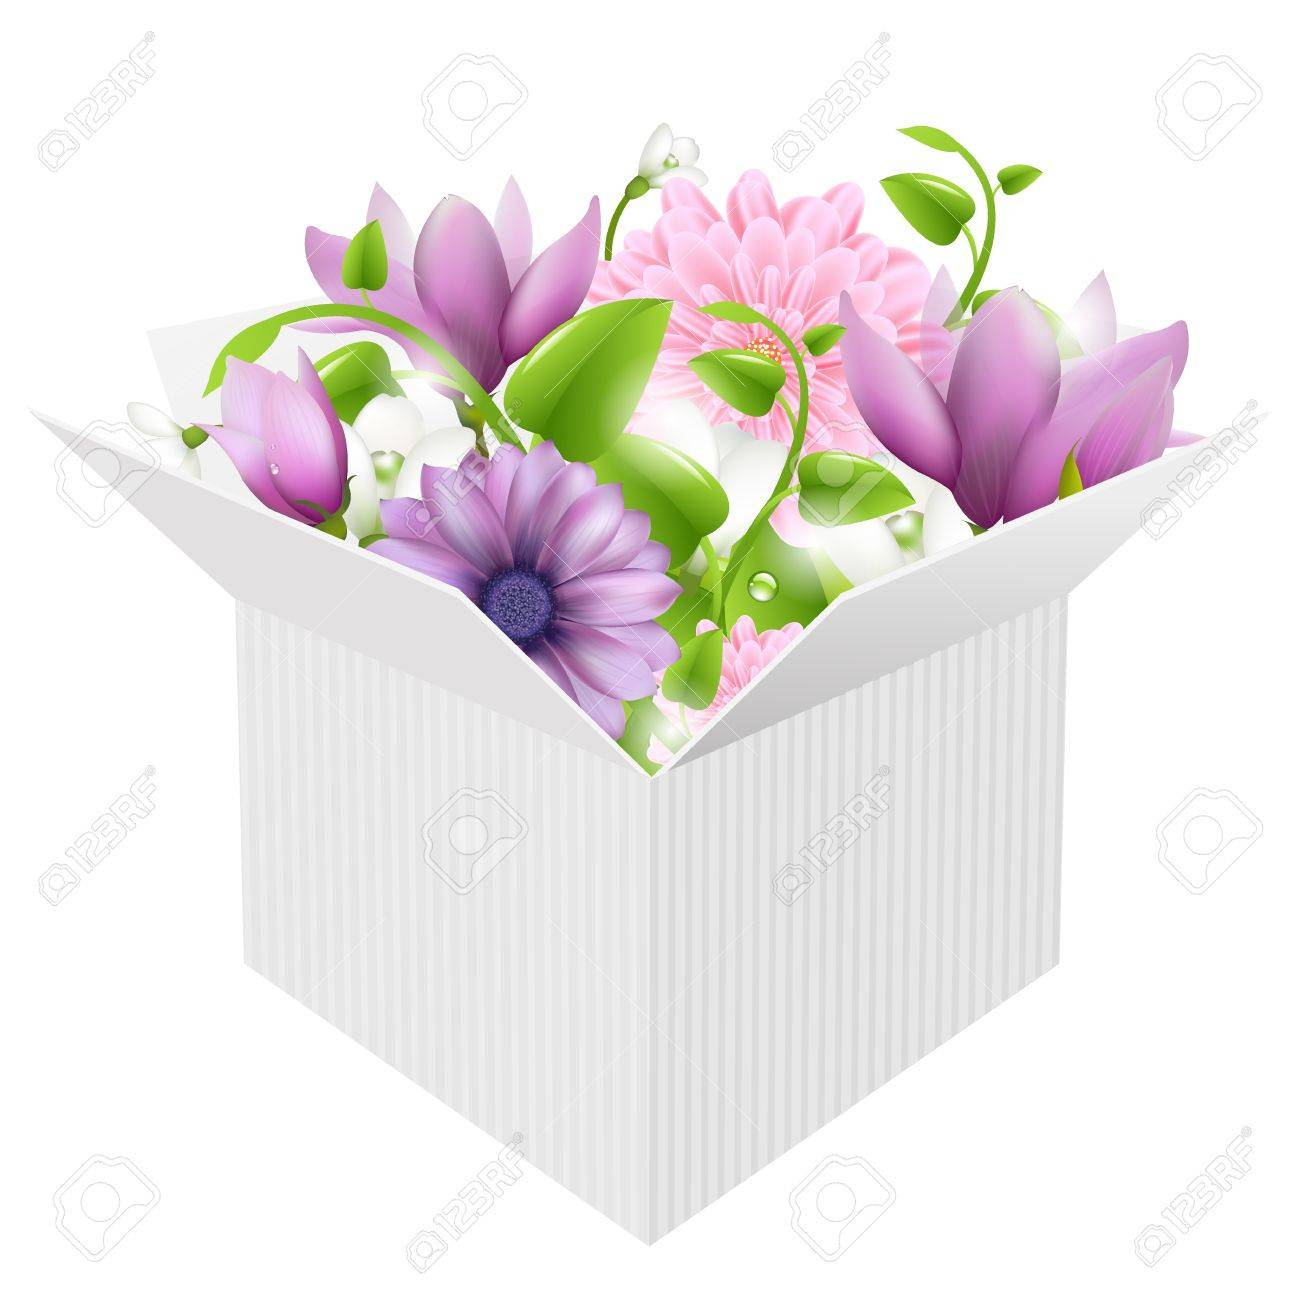 White Box With Spring Flowers, Isolated On White Background, Vector Illustration Stock Vector - 14442150